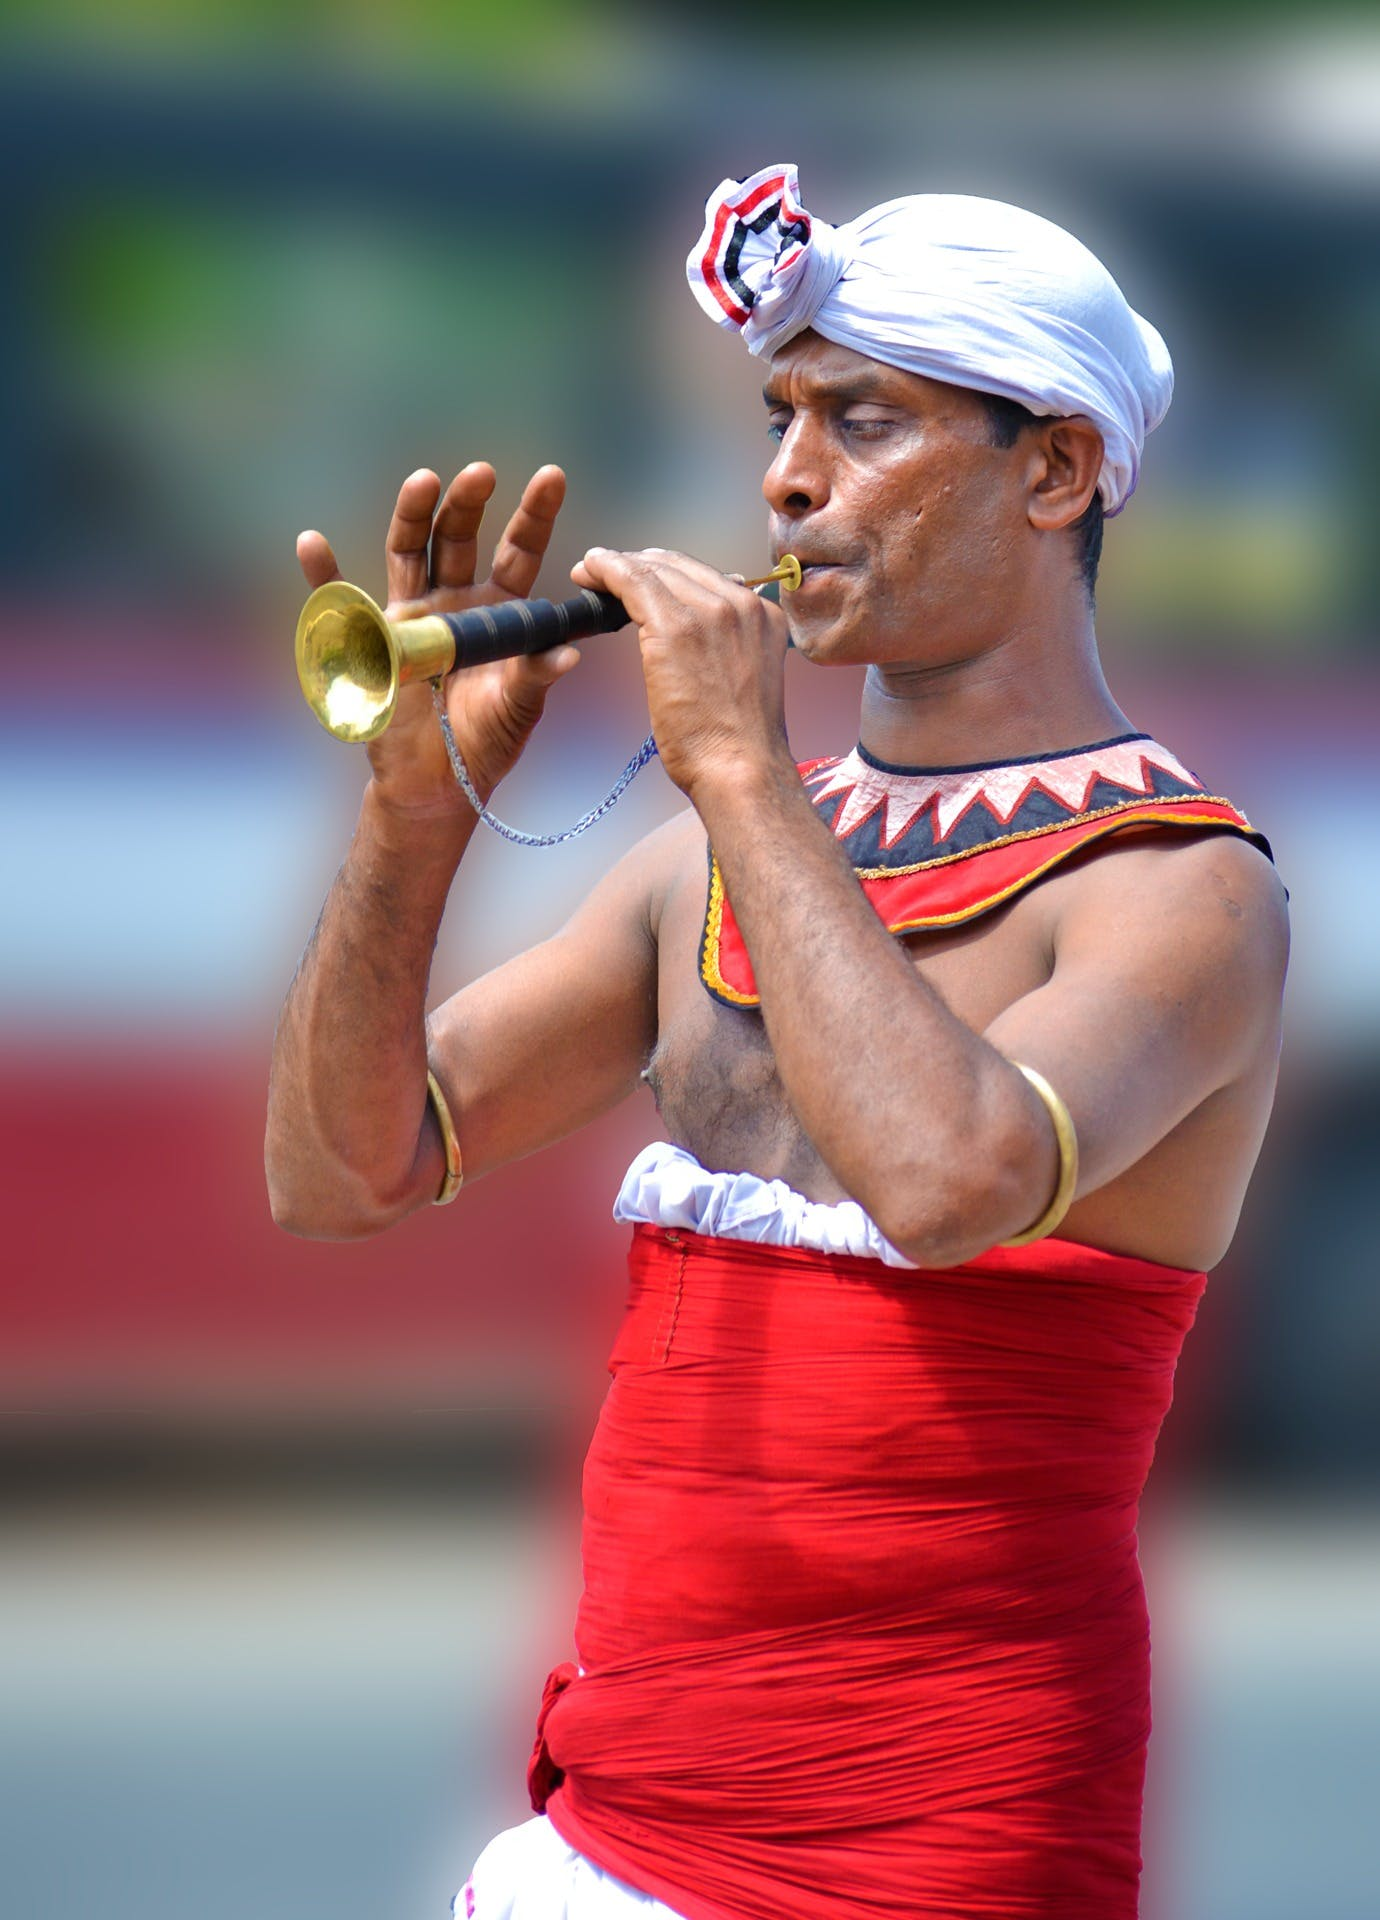 Man Playing Brass Instrument during Daytime